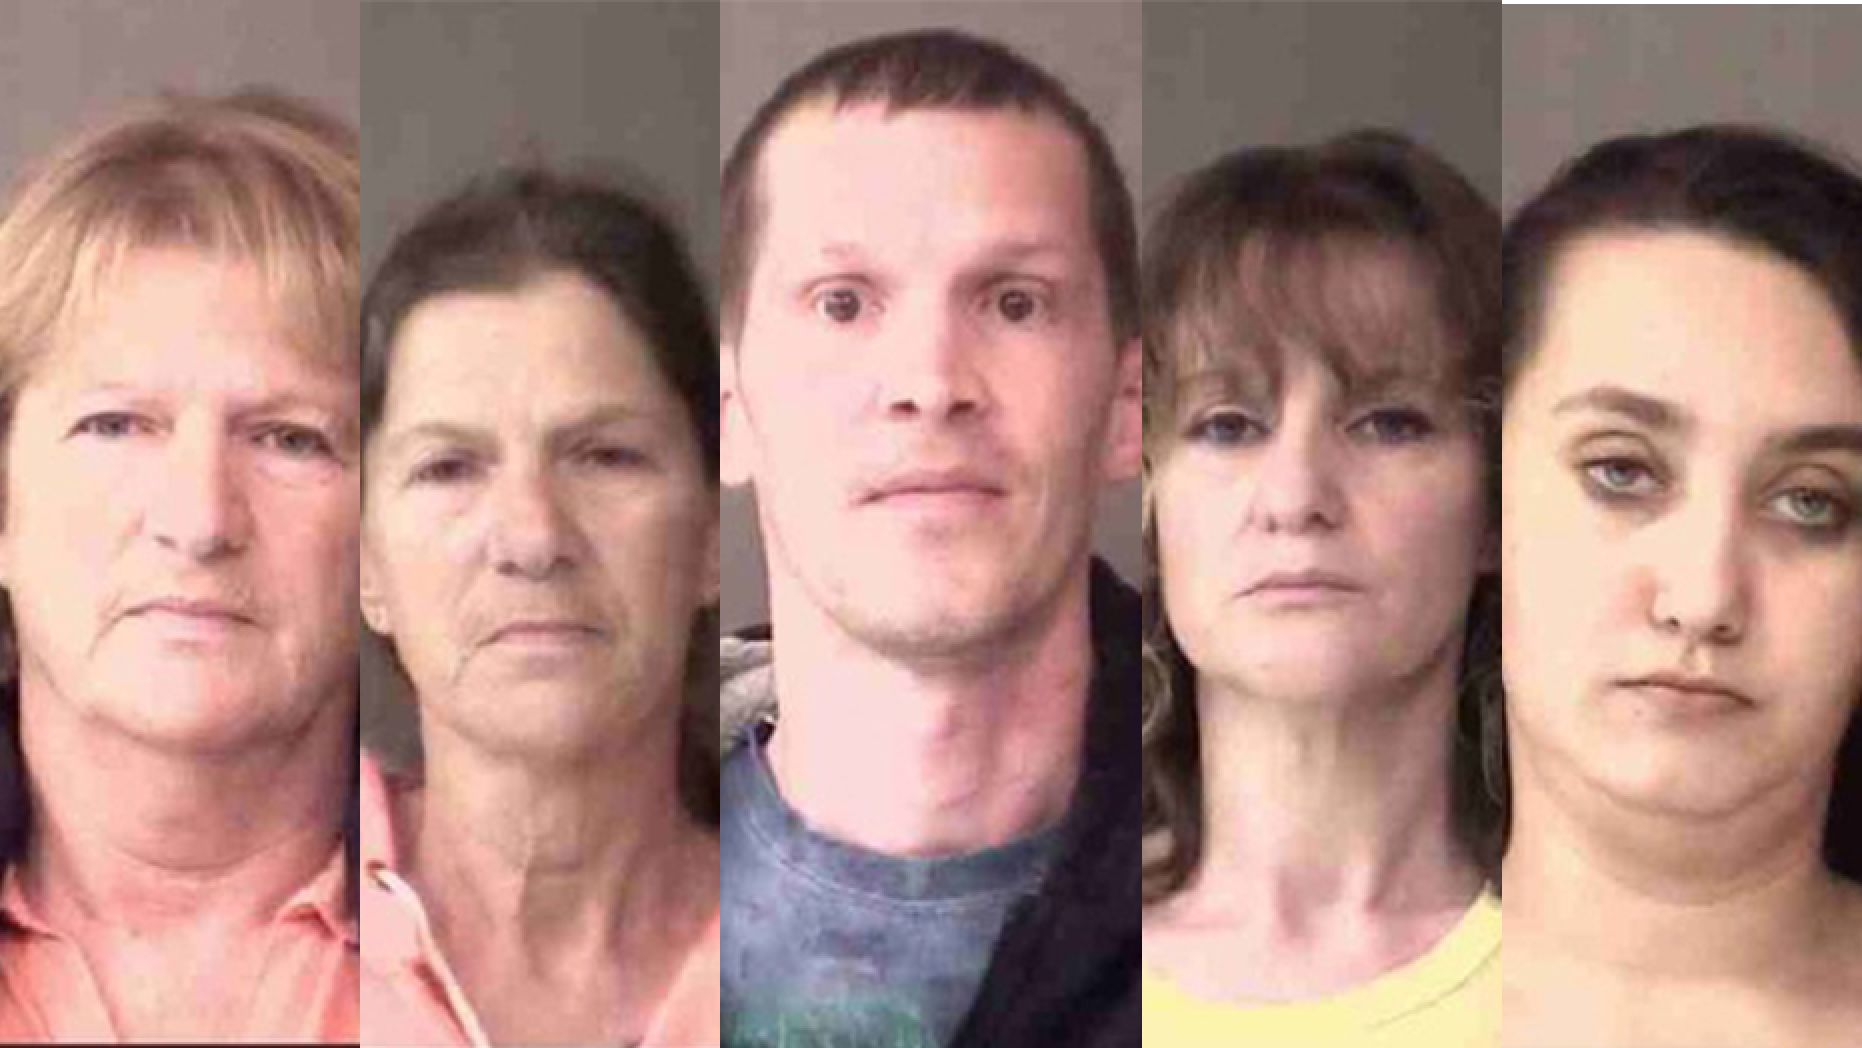 Police in Indiana charged (from left) Annette Priestly, Fayette Robinette, Travis Tillotson, Jammy Stacy, and Rune Springer with felony neglect of a dependent after a boy was found injured and severely malnourished. (Kosciusko County Jail)